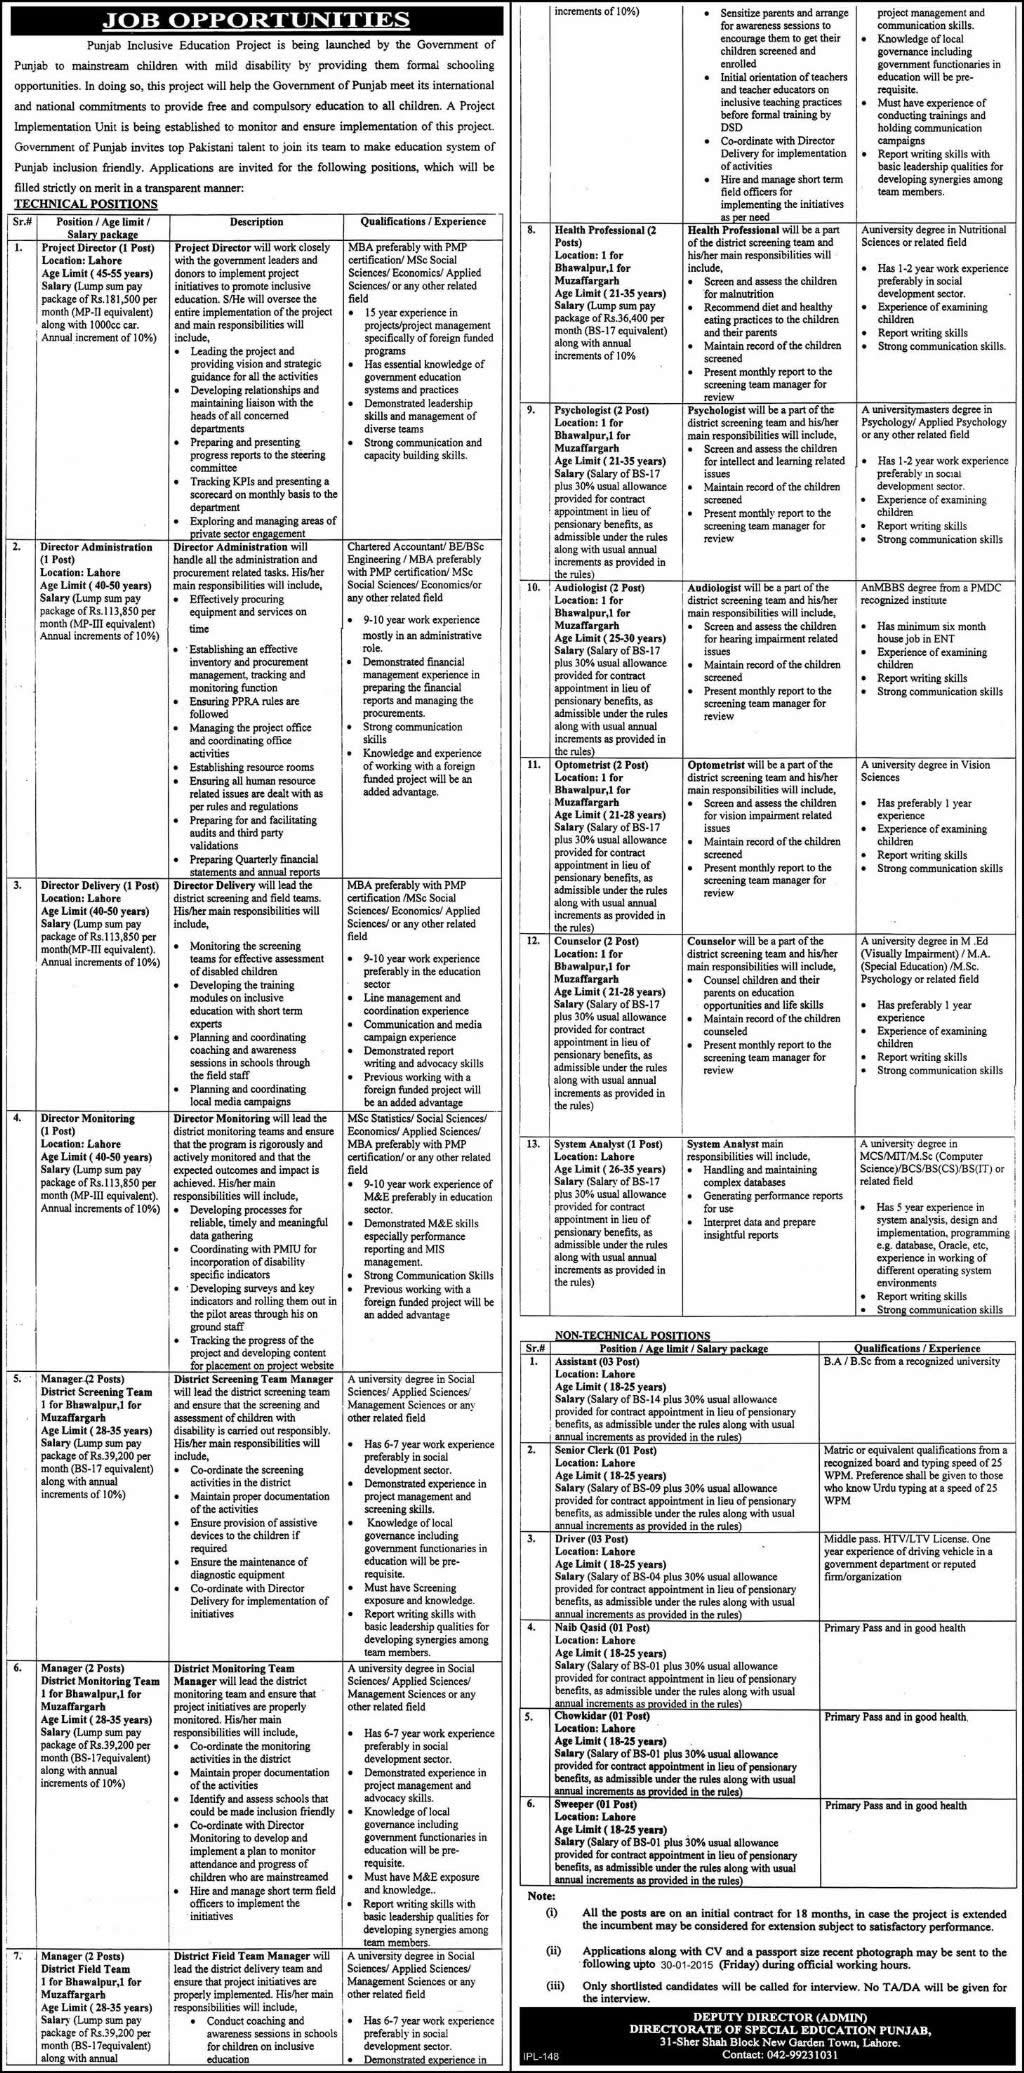 directorate of special education punjab jobs 2015 inclusive directorate of special education punjab jobs 2015 inclusive education project latest new